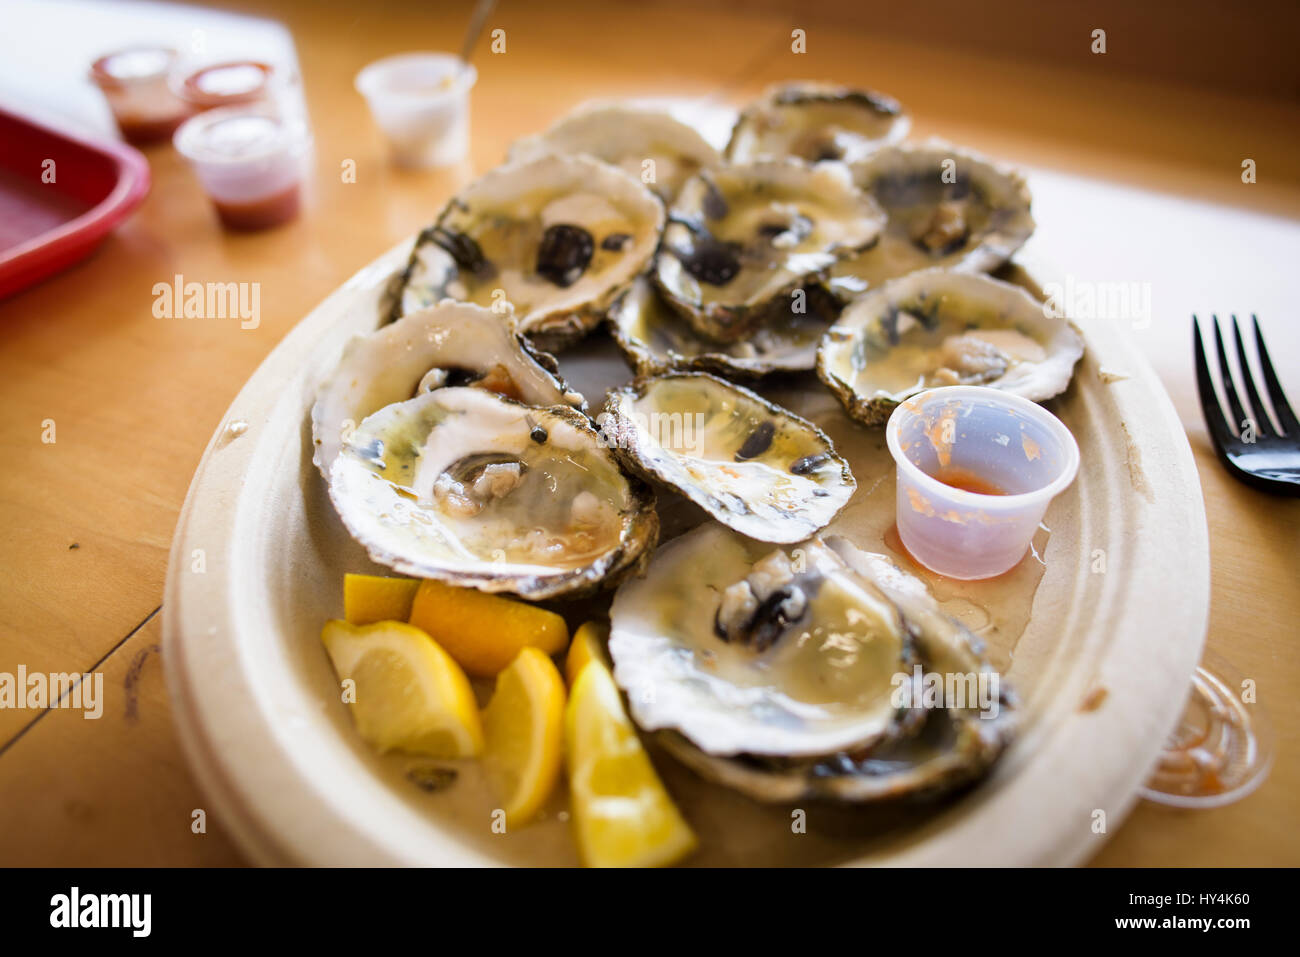 Plate of Oysters on the half shell. - Stock Image